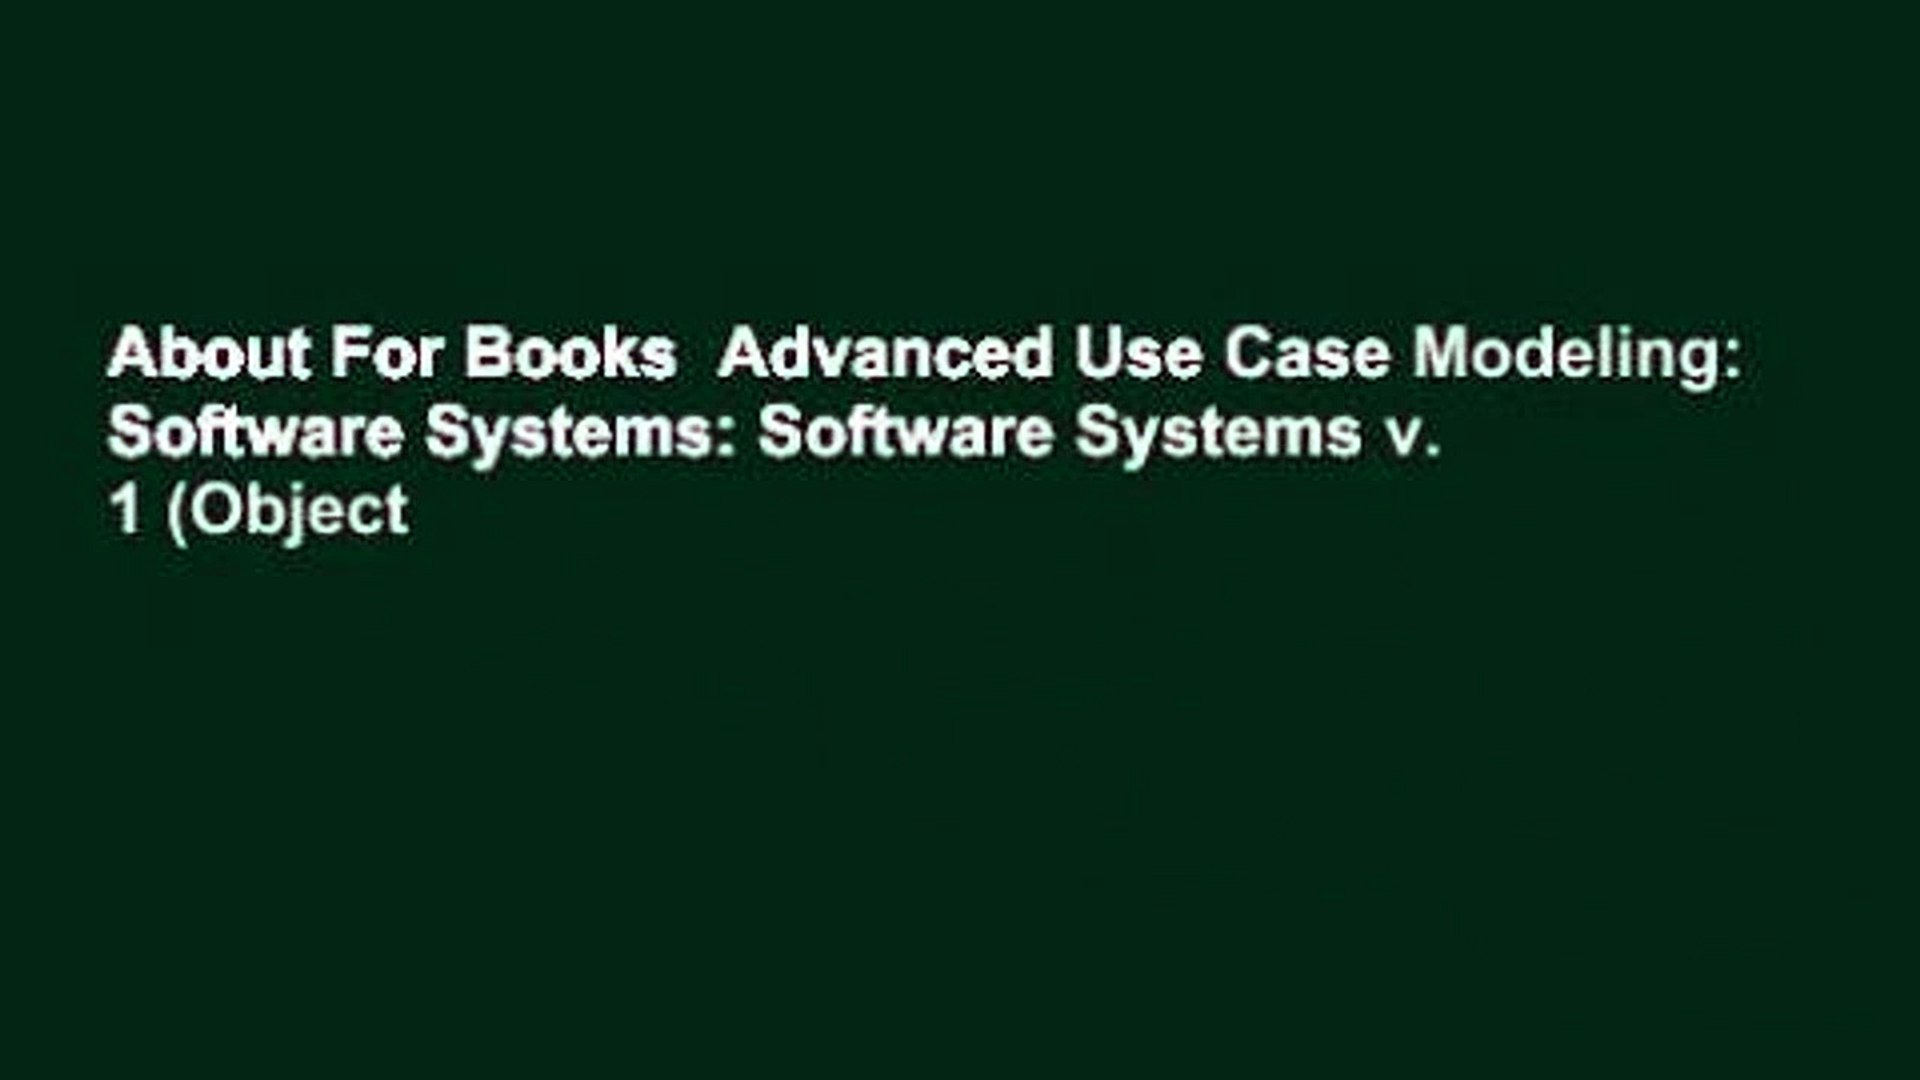 About For Books  Advanced Use Case Modeling: Software Systems: Software Systems v. 1 (Object